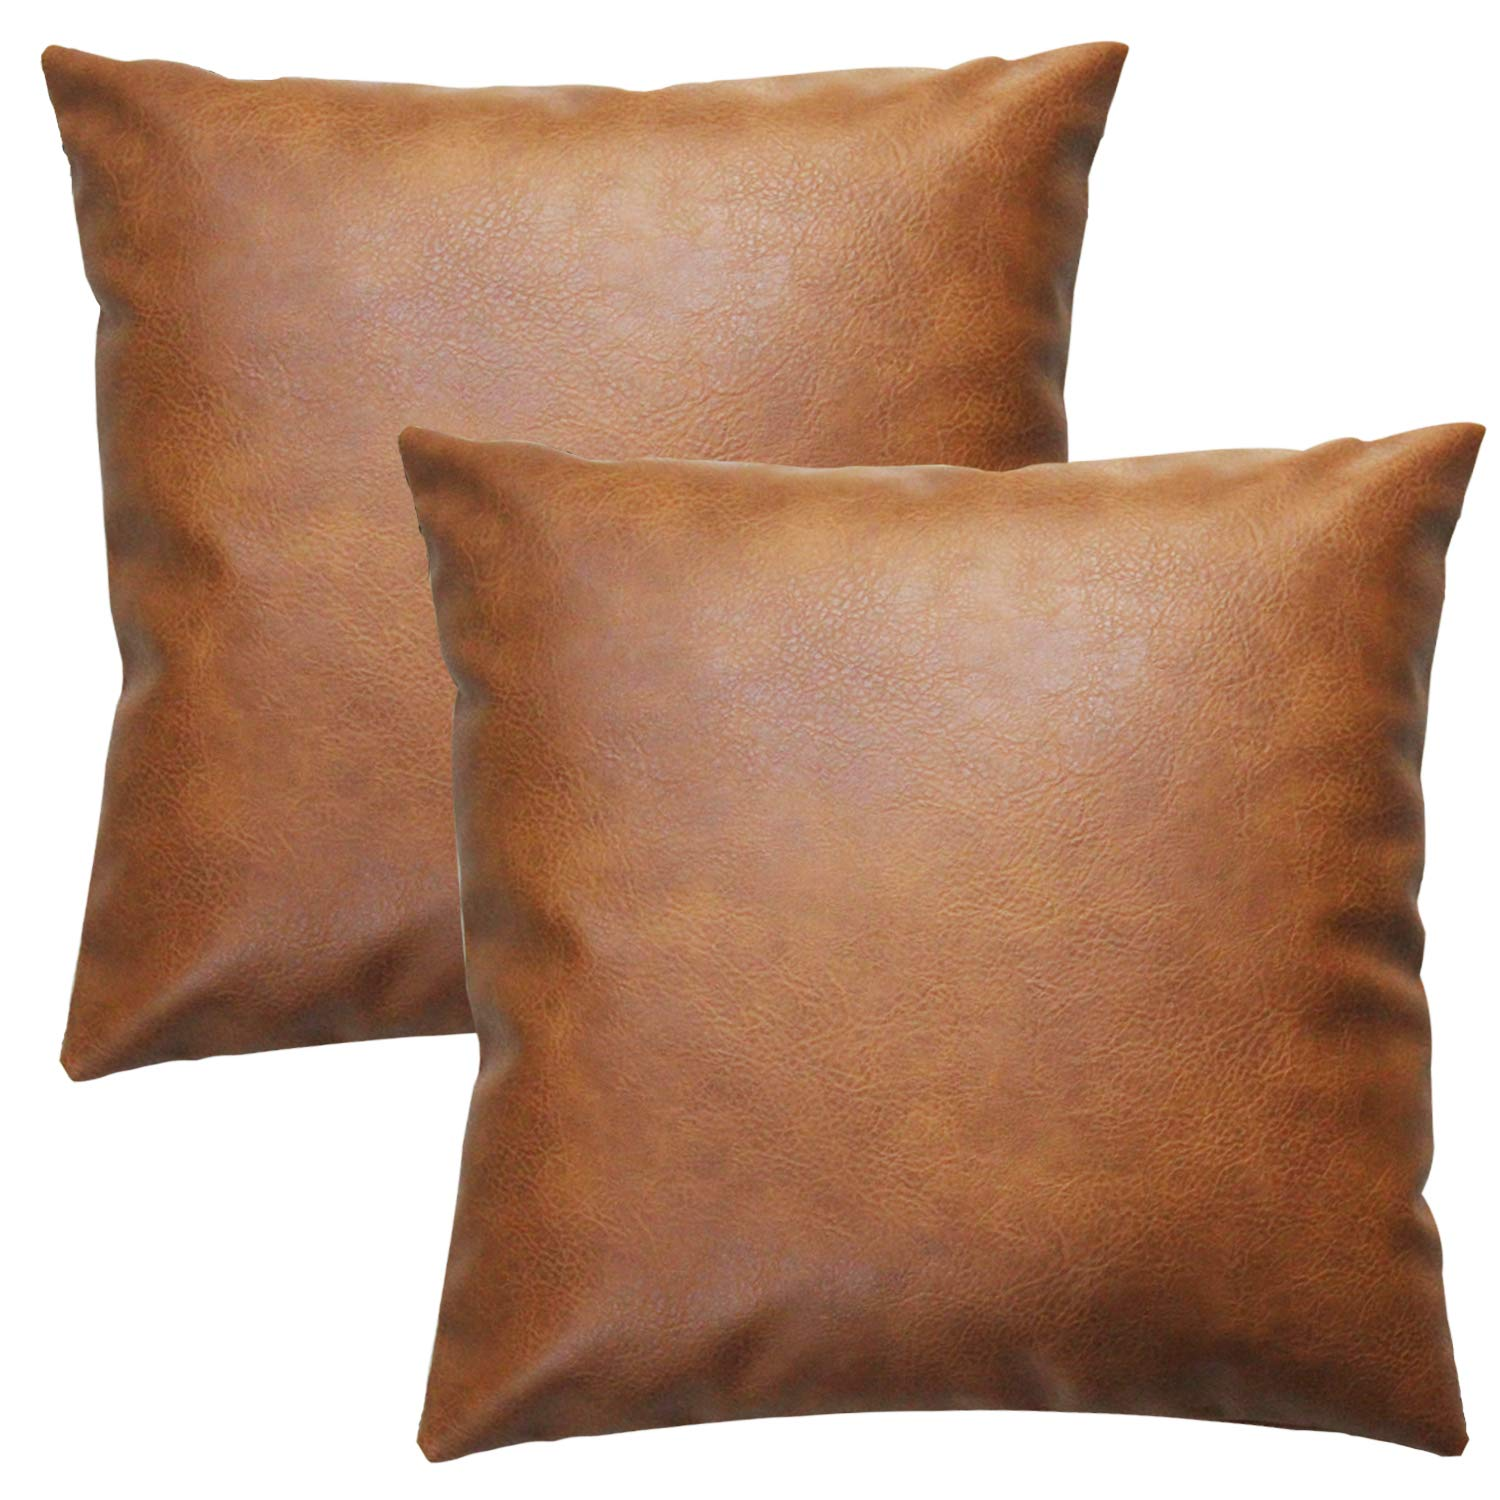 JOJUSIS Modern Leather Throw Pillow Covers for Couch Sofa Bed Set of 2 18 x  18 Inch 100% Faux Leather